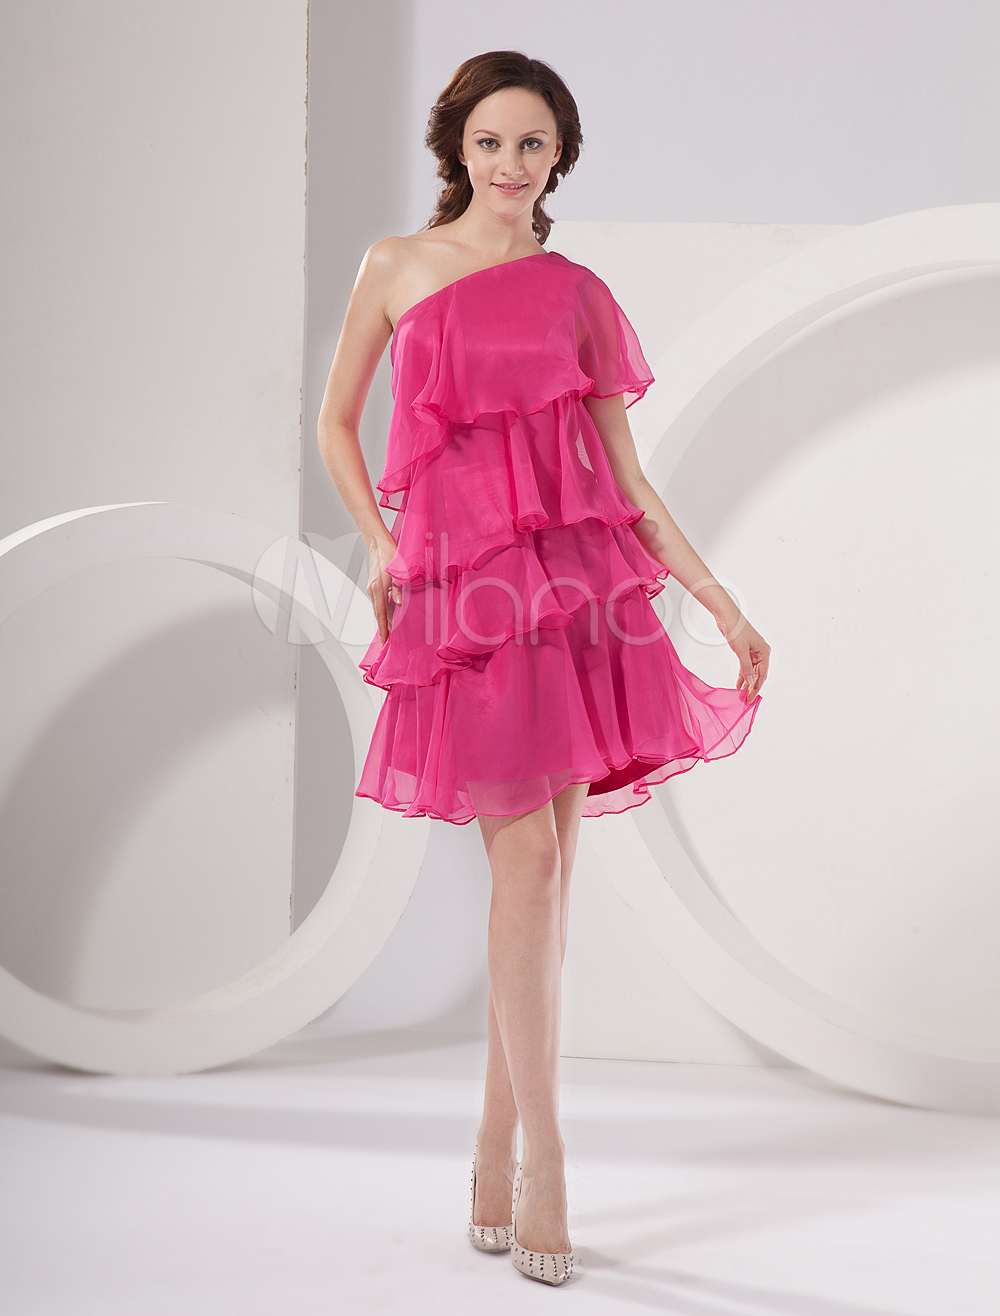 China Wholesale Homecoming Dress - A-line Fuchsia Chiffon Multi-Layered Homecoming Dress